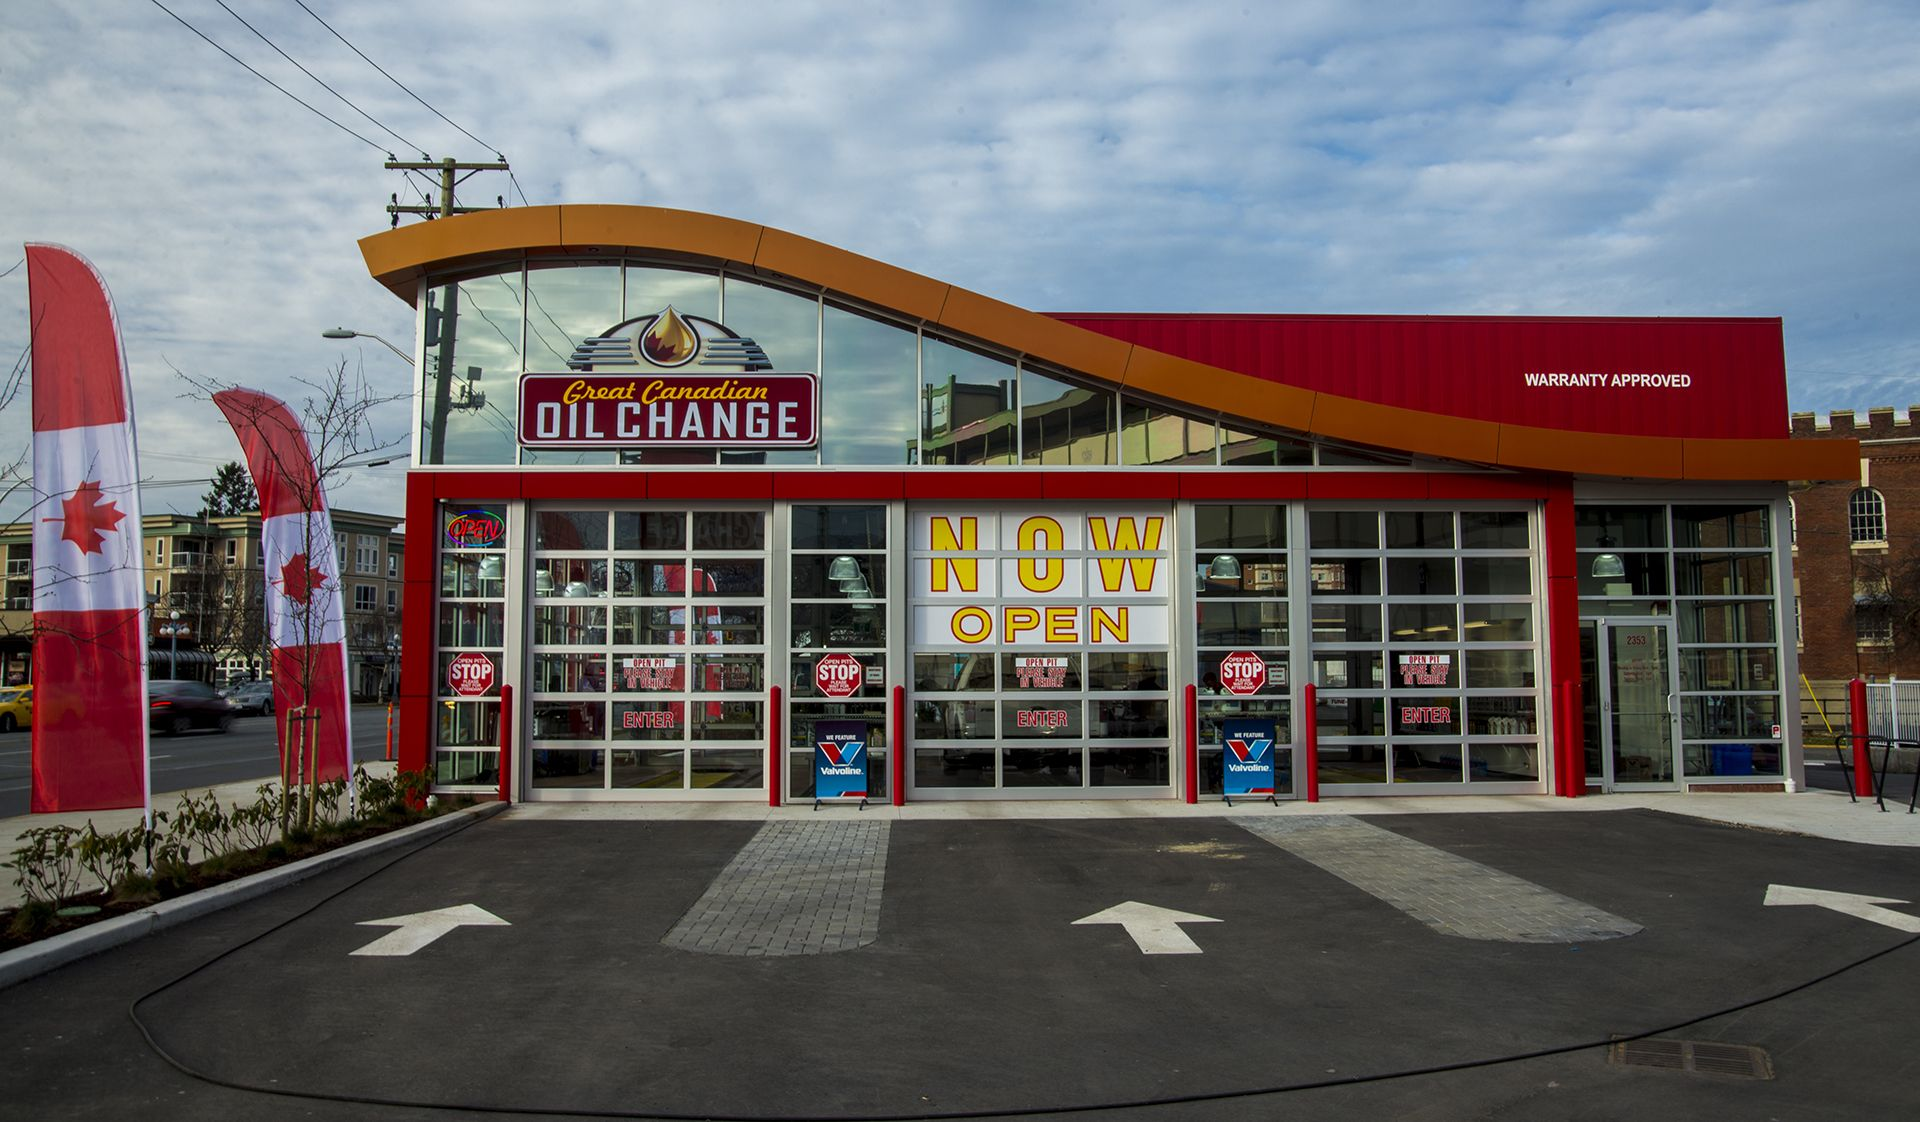 Great Canadian Oil Change Vancouver Island store front